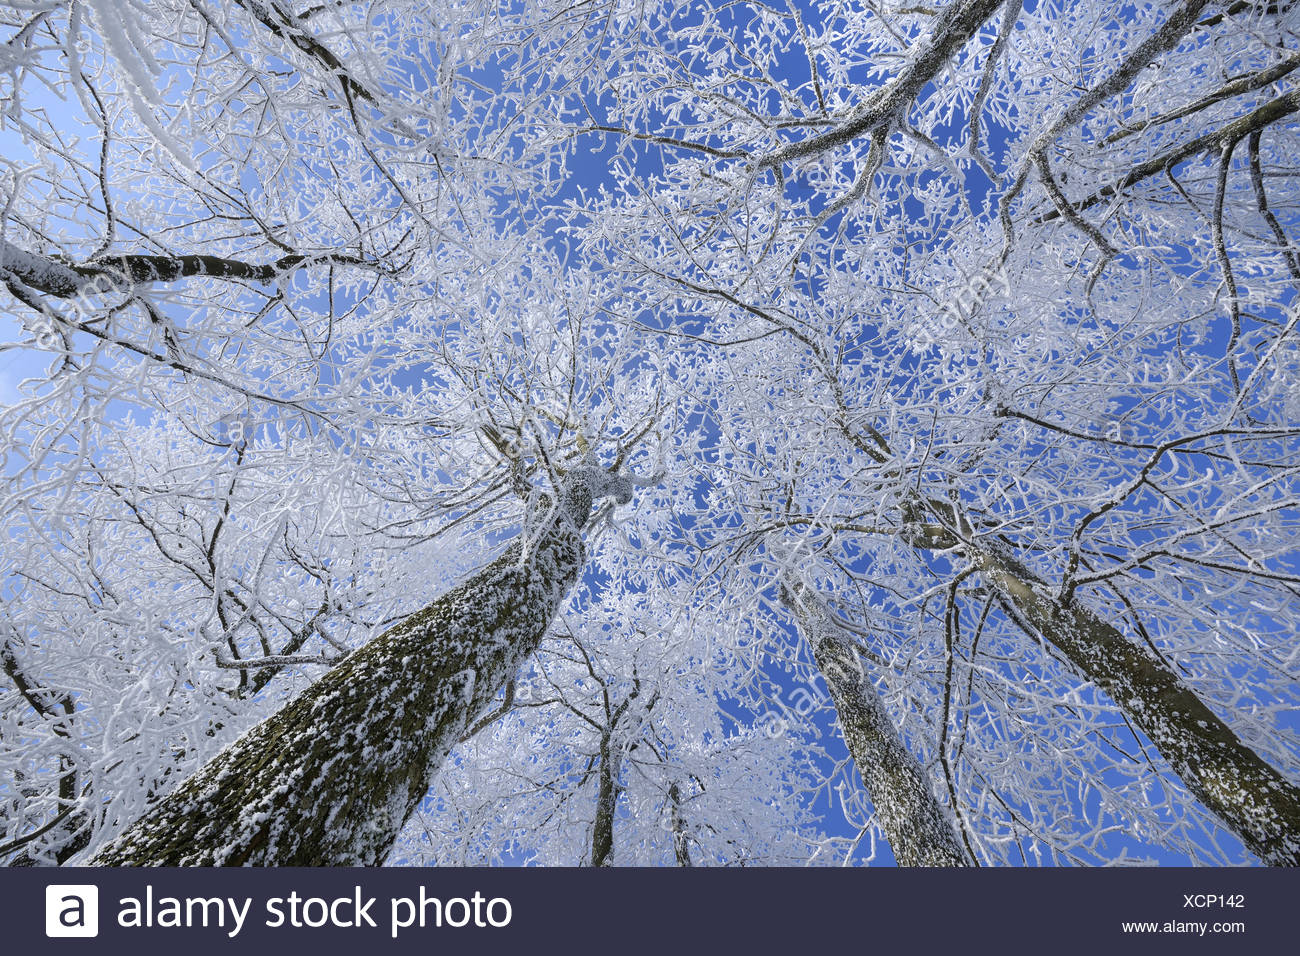 hoar frost on tree tops, view from below, Germany, Hesse, Rhoen, Wasserkuppe - Stock Image